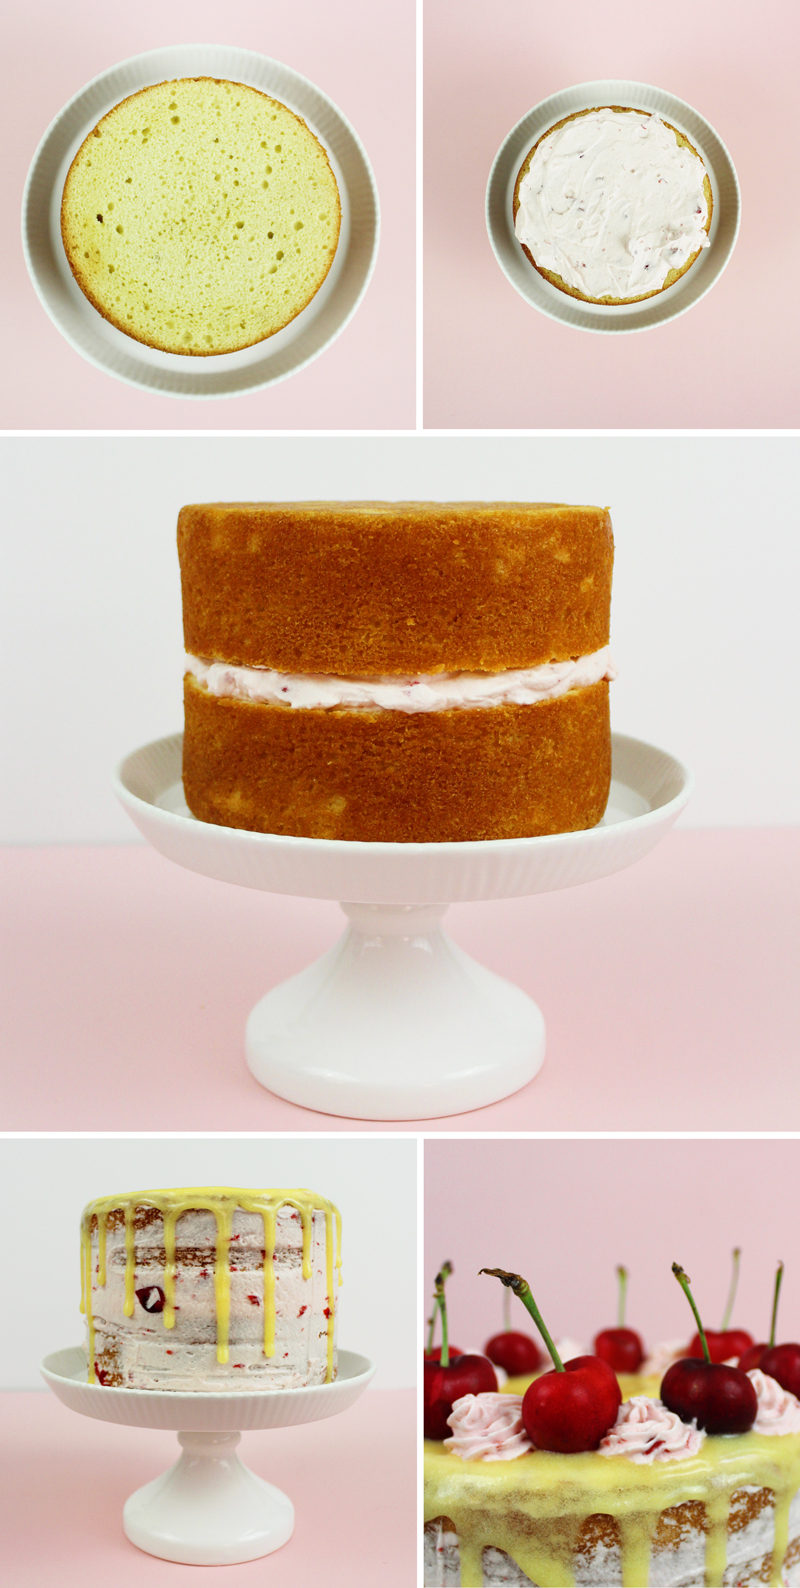 Whiskey Cake Recipe With Video and Step by Step Instructions